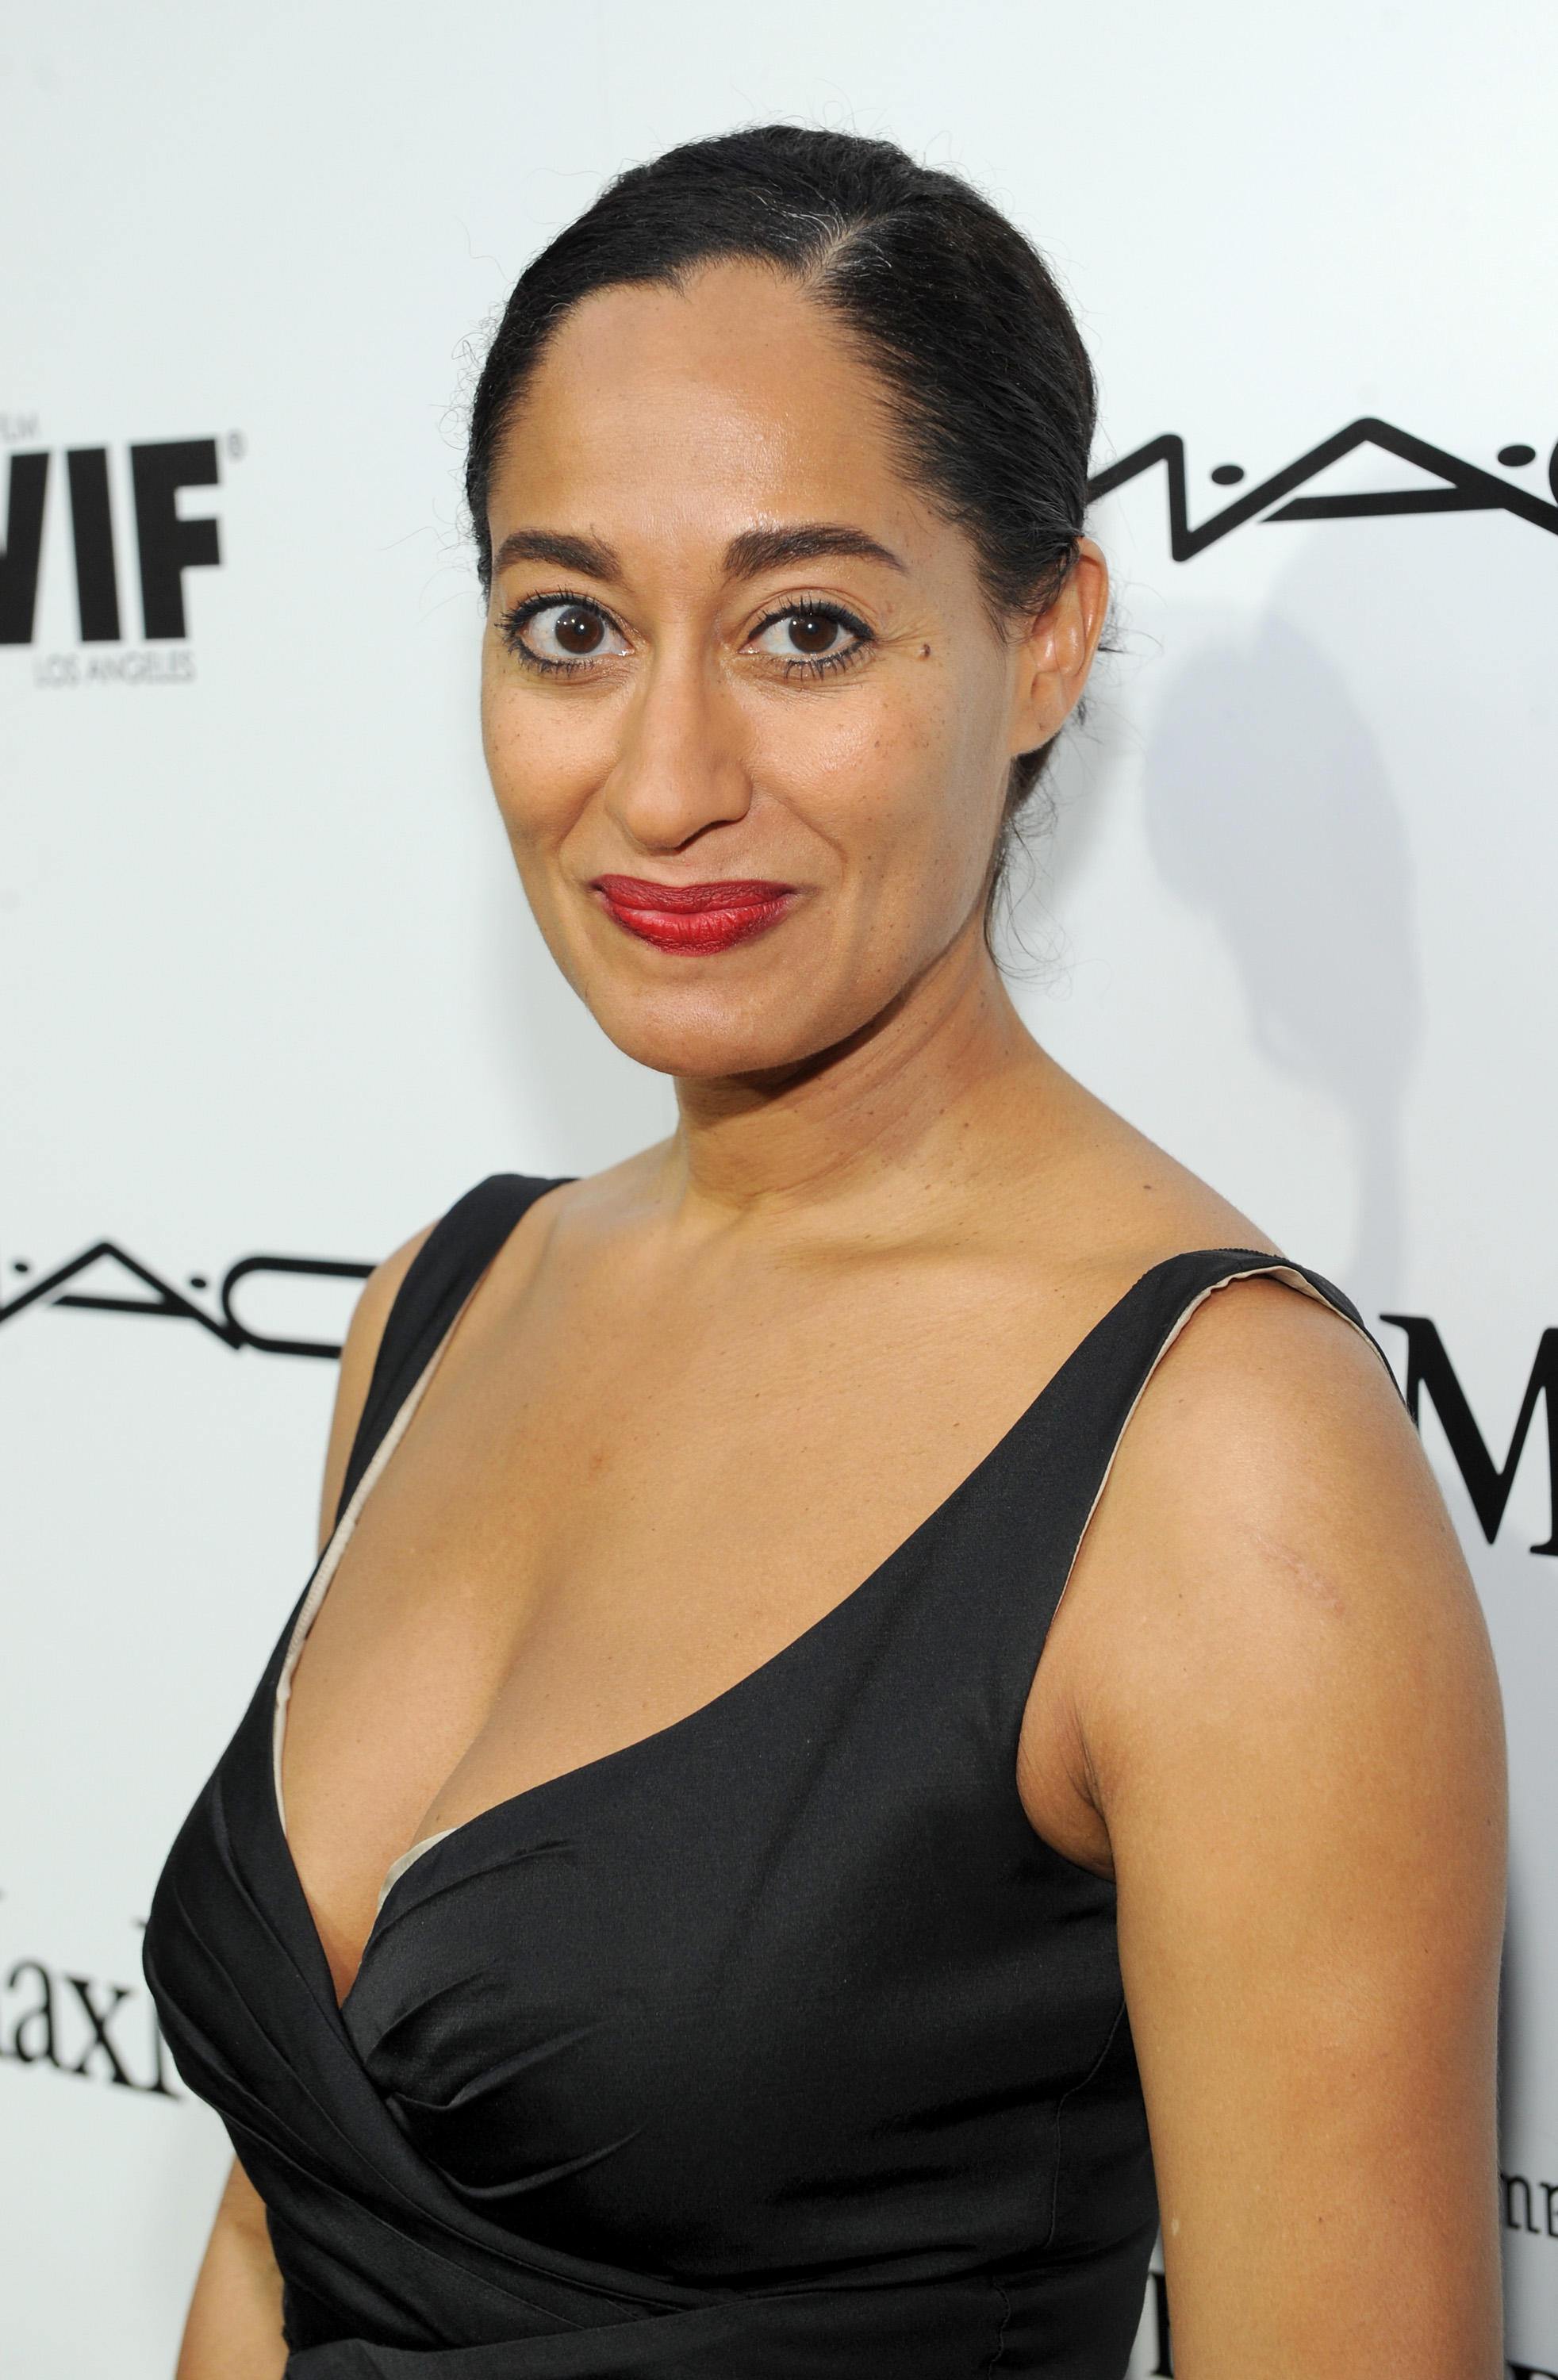 Tracee Ellis Ross - photos, news, filmography, quotes and ...